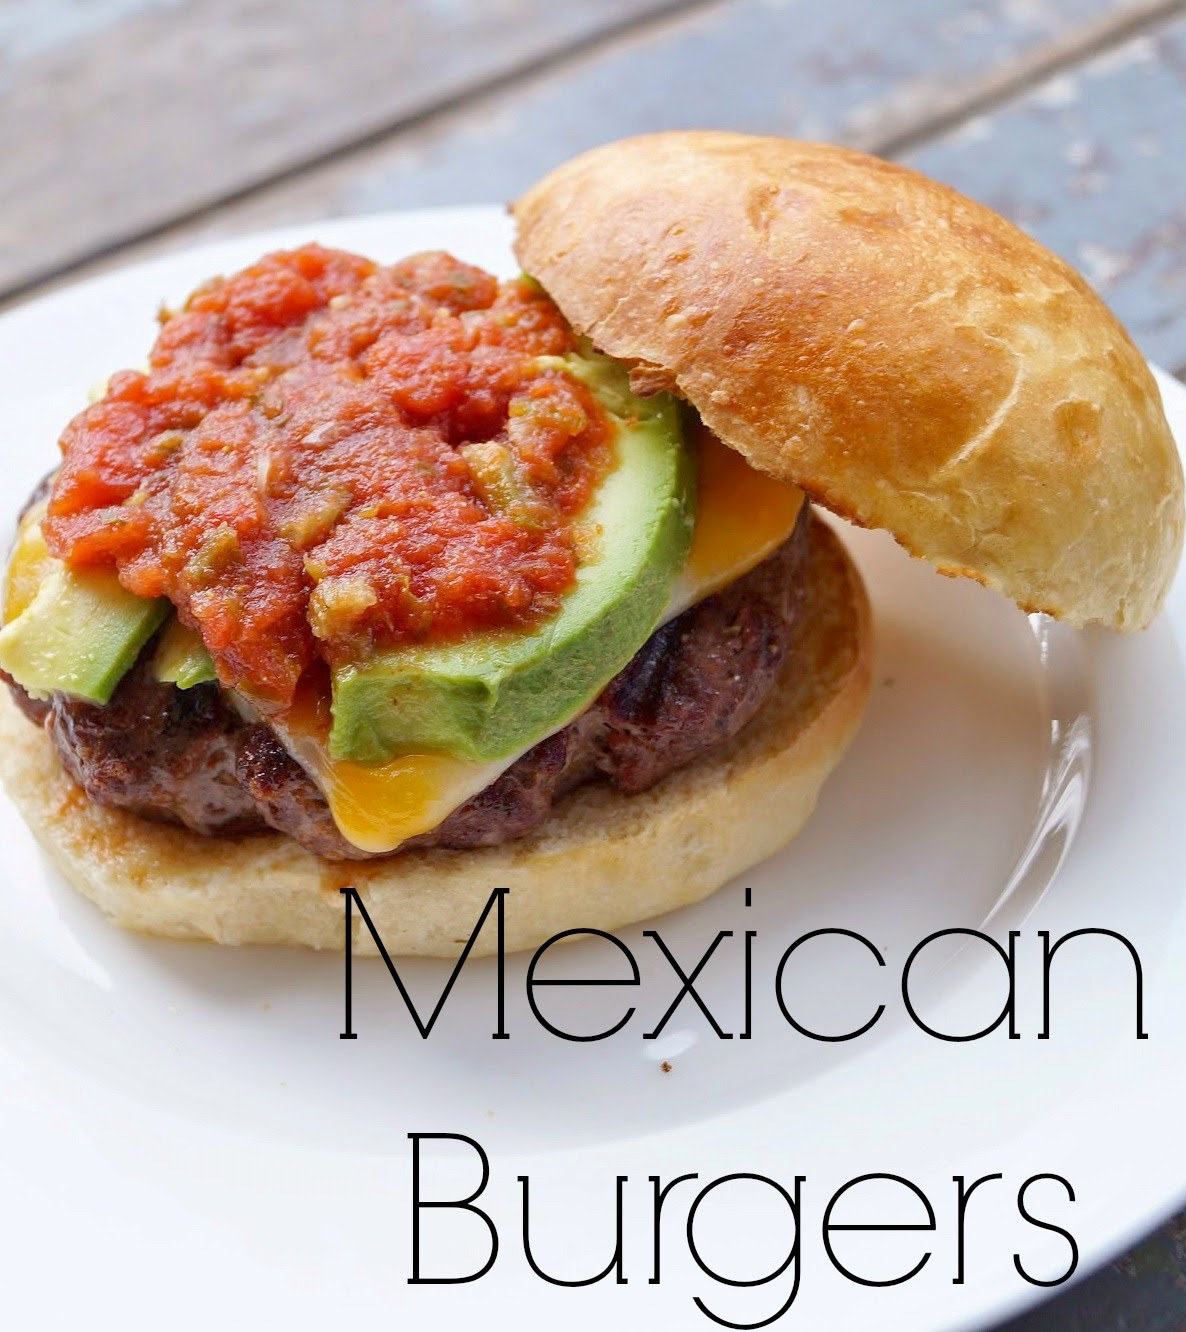 Old House to New Home : Mexican Burgers with Homemade Brioche Buns